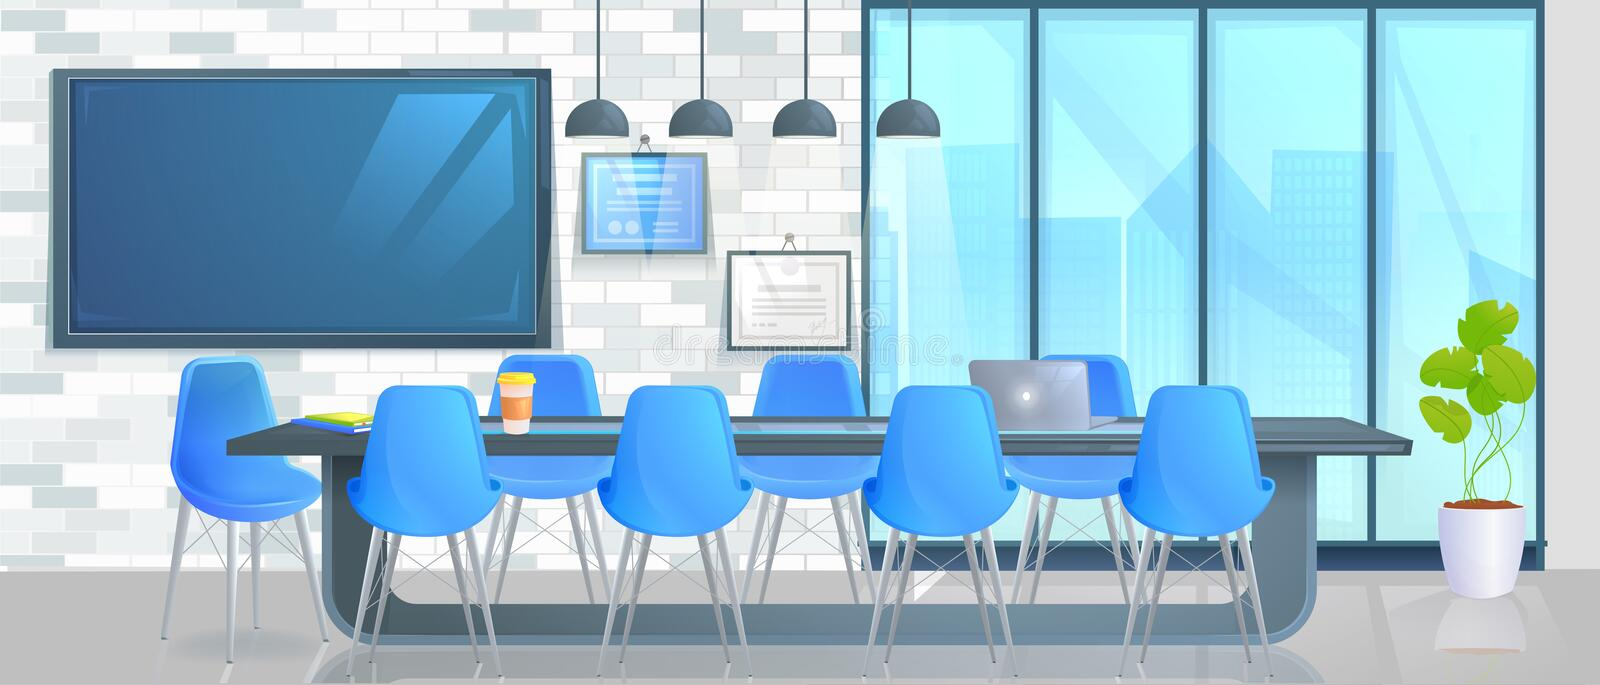 Smart home office banner. Modern conference room with a control screen and hand. Vector cartoon illustration stock illustration